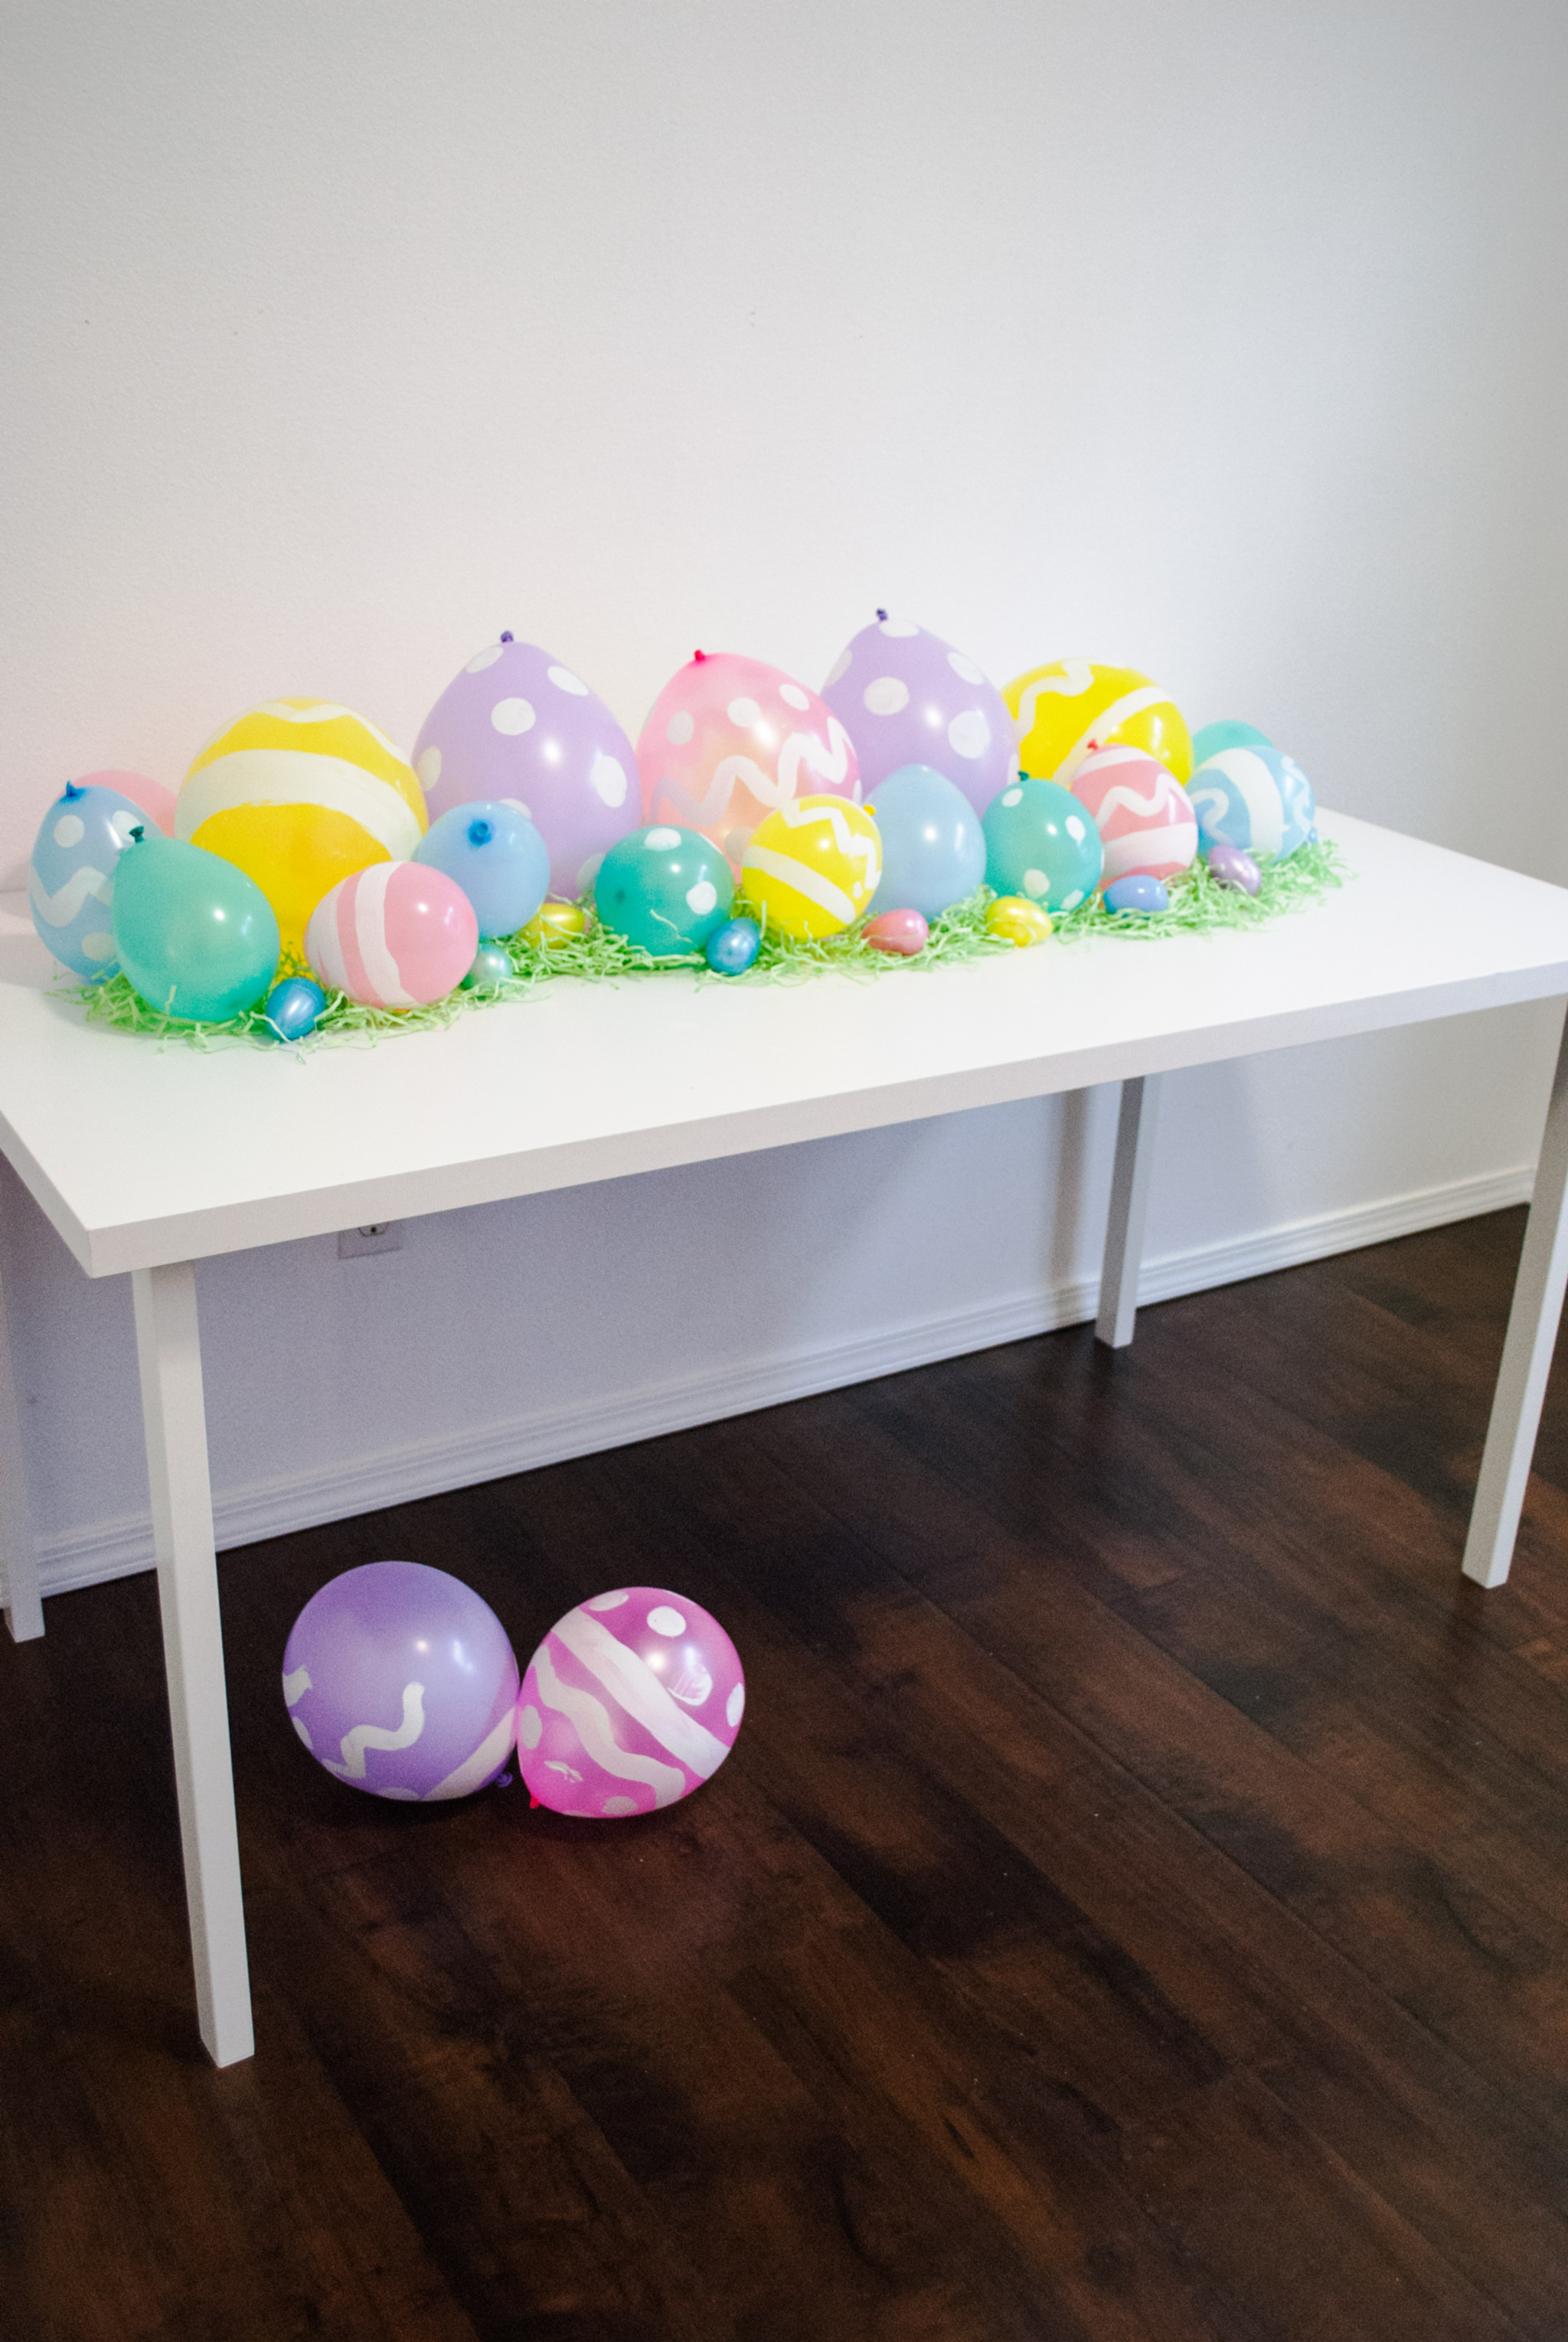 DIY Easter Egg Balloon Table Runner - Project Nursery